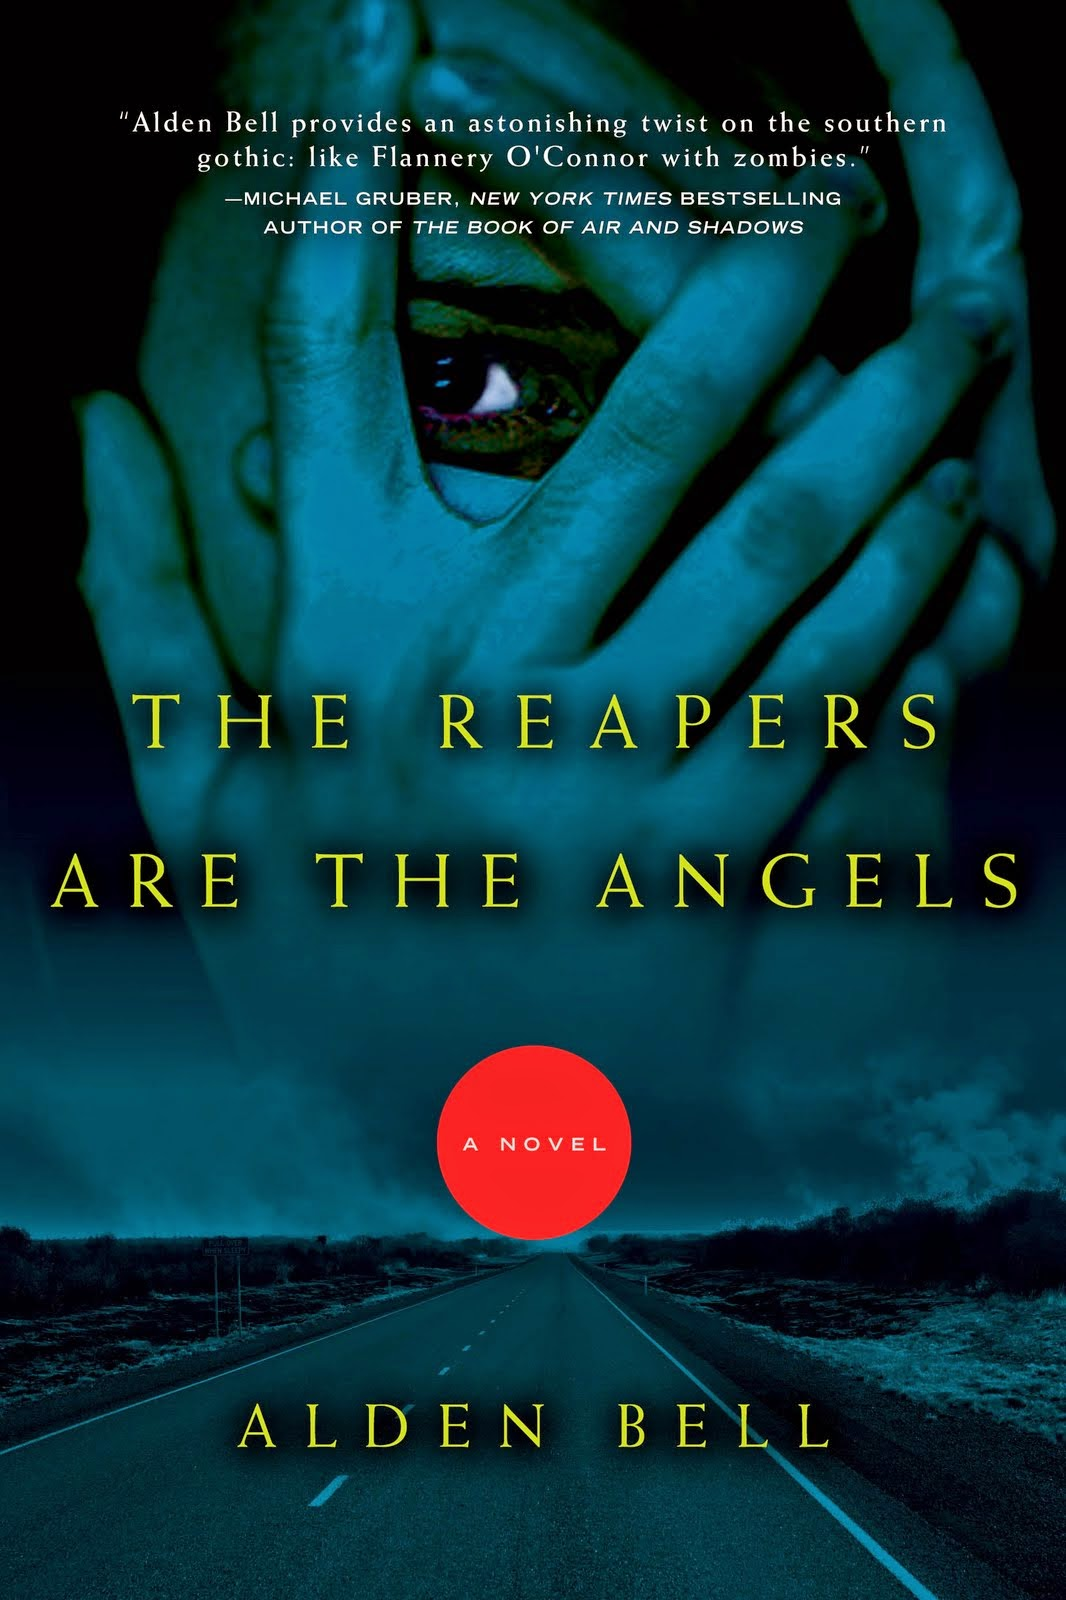 The Reapers Are The Angels By Alden Bell Of Course, I'm Still Pushing This  Book It Is Rare, To Find A Book About The Zombie Apocalypse That Addresses  The